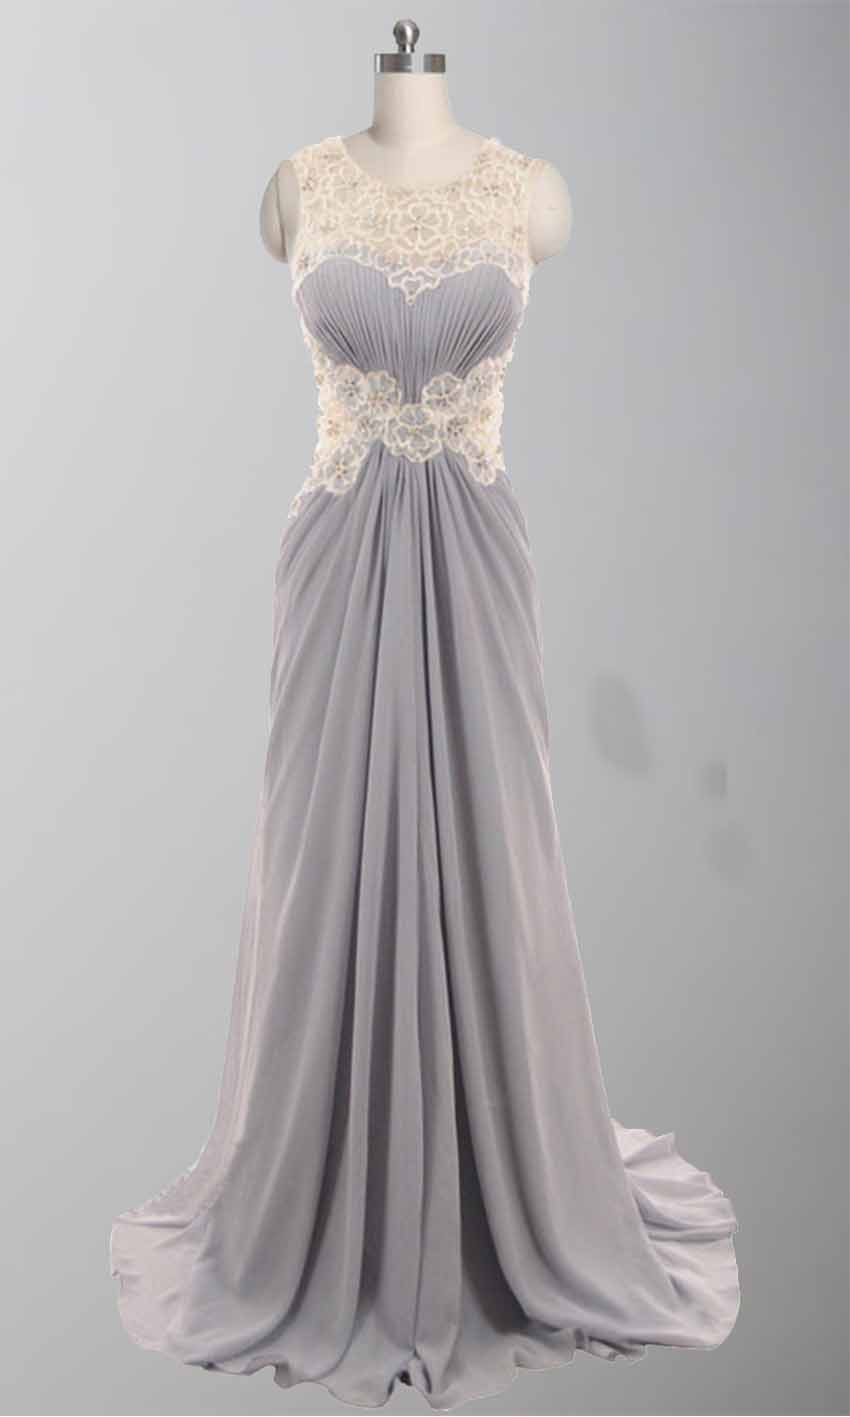 Round Gray Lace Flower Ruching Long Formal Dresses KSP304 [KSP304] - £102.00 : Cheap Prom Dresses Uk, Bridesmaid Dresses, 2014 Prom & Evening Dresses, Look for cheap elegant prom dresses 2014, cocktail gowns, or dresses for special occasions? kissprom.co.uk offers various bridesmaid dresses, evening dress, free shipping to UK etc.